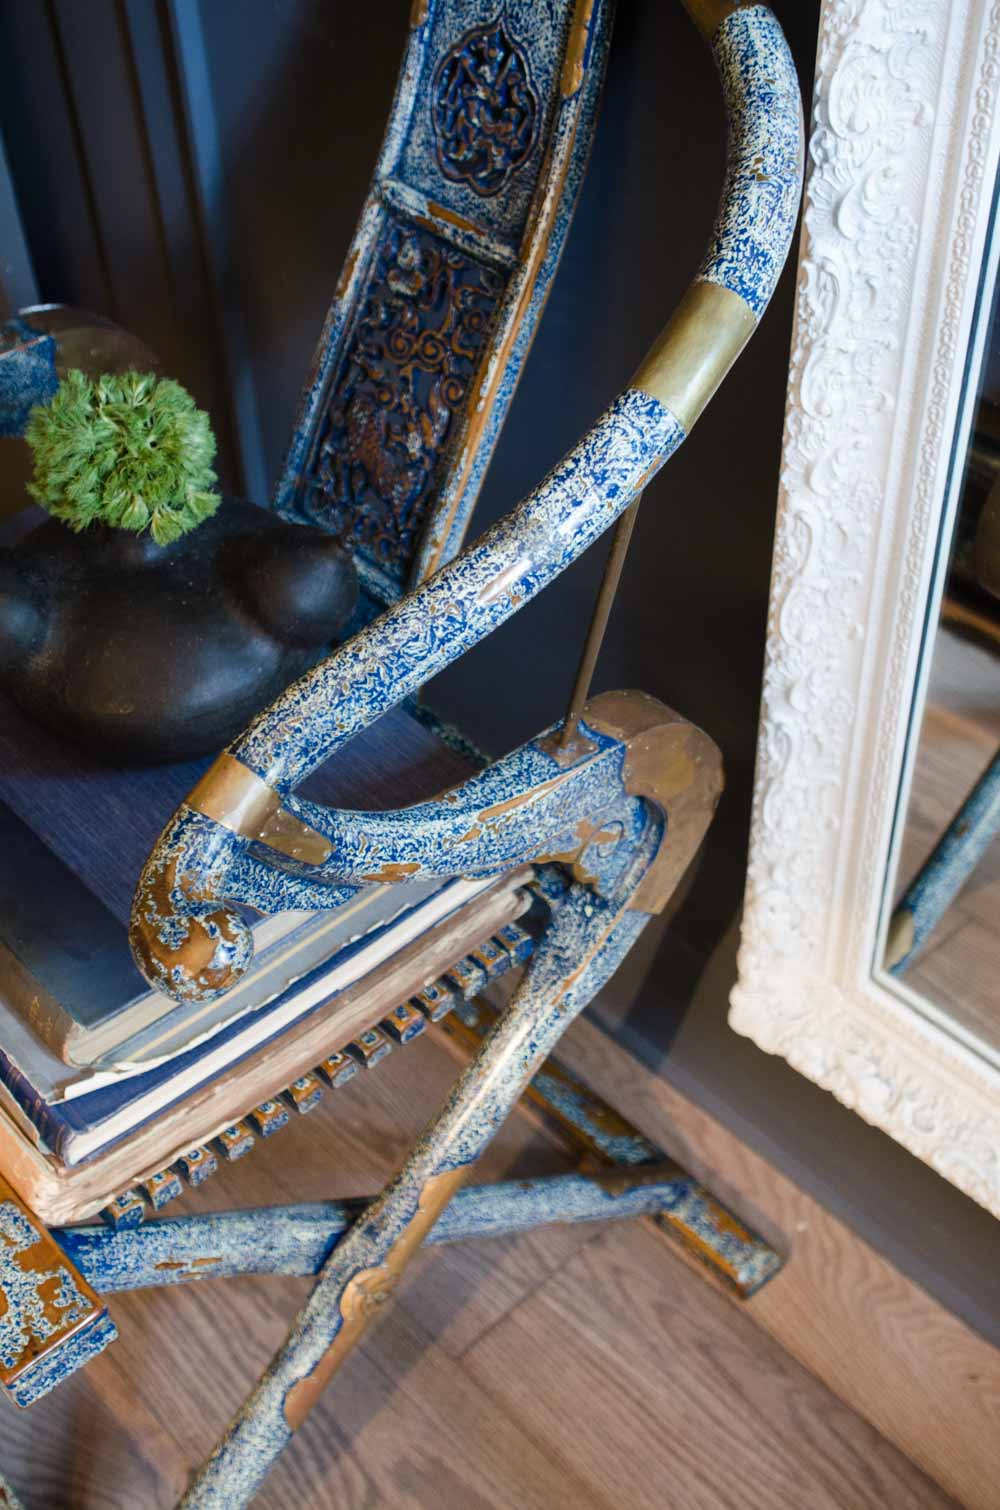 Antique chair details in the study